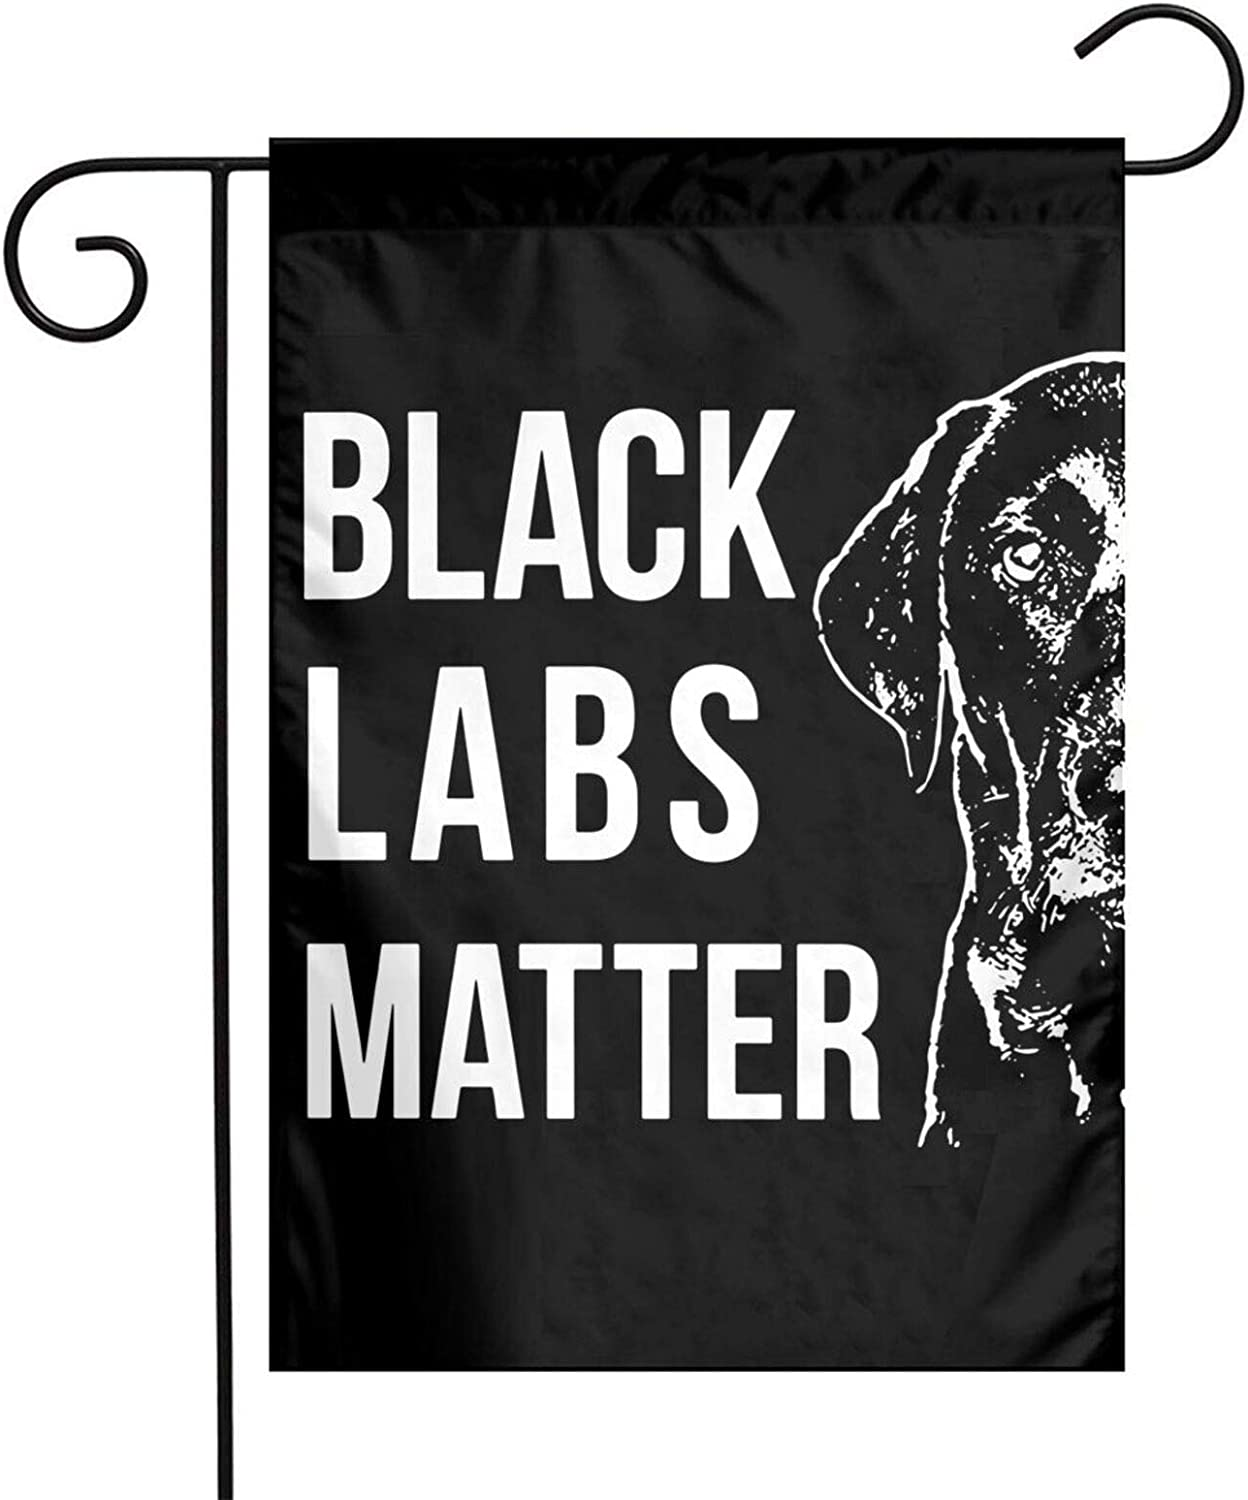 JpnvxiE Labrador Black Labs Matter Garden Flags Labrador Black Labs Matter Welcome Large Yard Double Sided House Flag Banners for Patio Lawn Home Outdoor Decor 12.5x18In